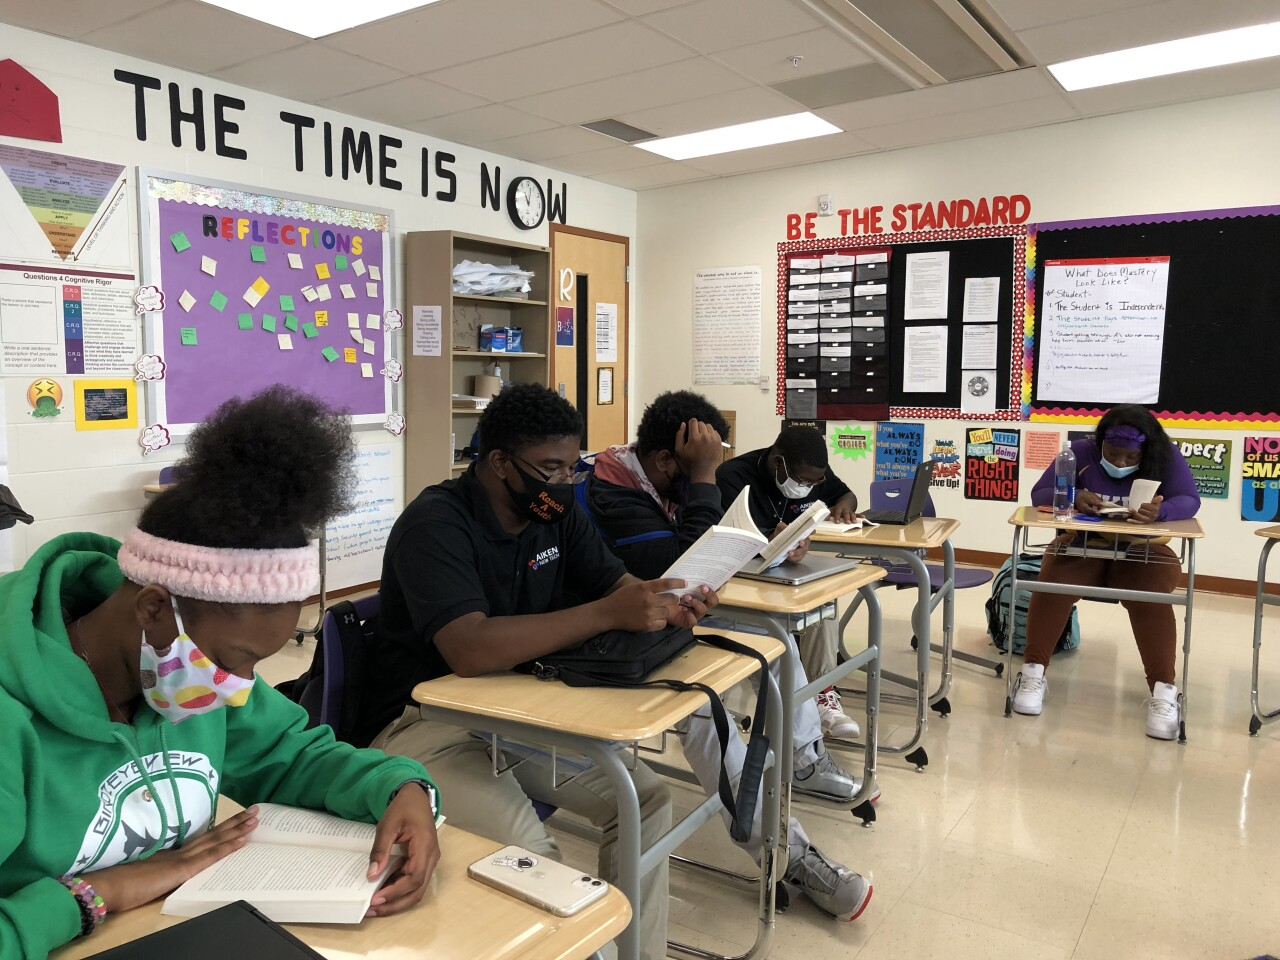 Aiken High School students read in preparation for a discussion with Keith LaMar, an inmate on death row at the Ohio State Penitentiary.